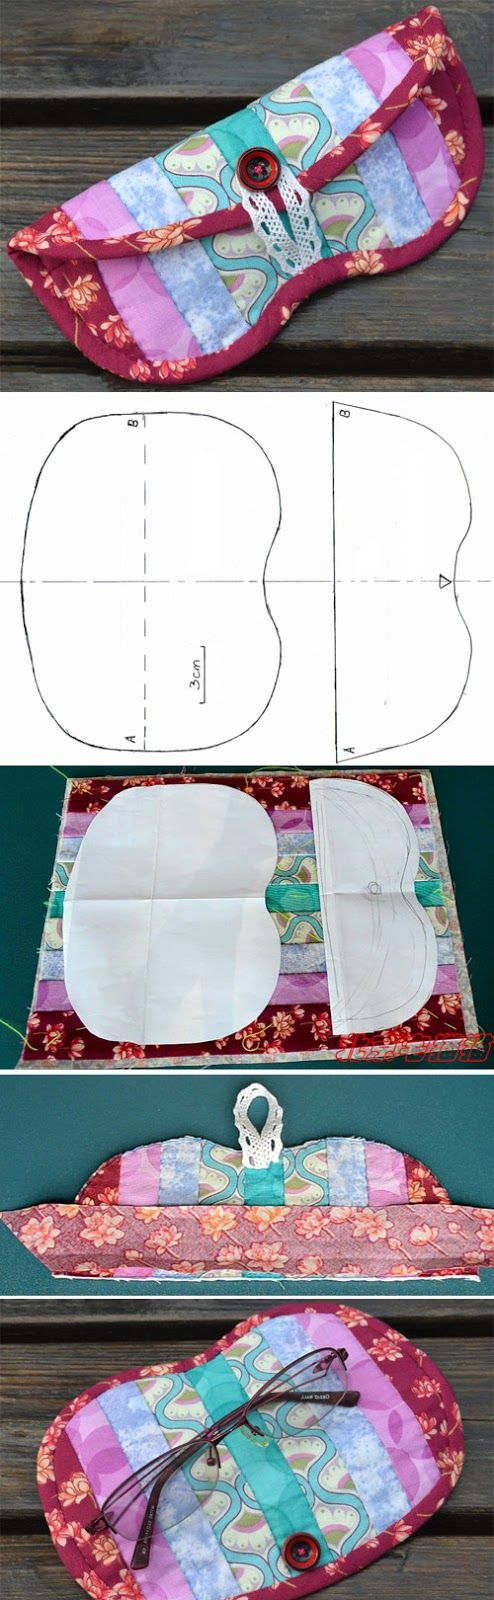 Patchwork glasses case, quilted, handmade, eyeglass case. Step by step photo tutorial. http://www.handmadiya.com/2016/05/glasses-case-tutorial.html Más                                                                                                                                                                                 Más